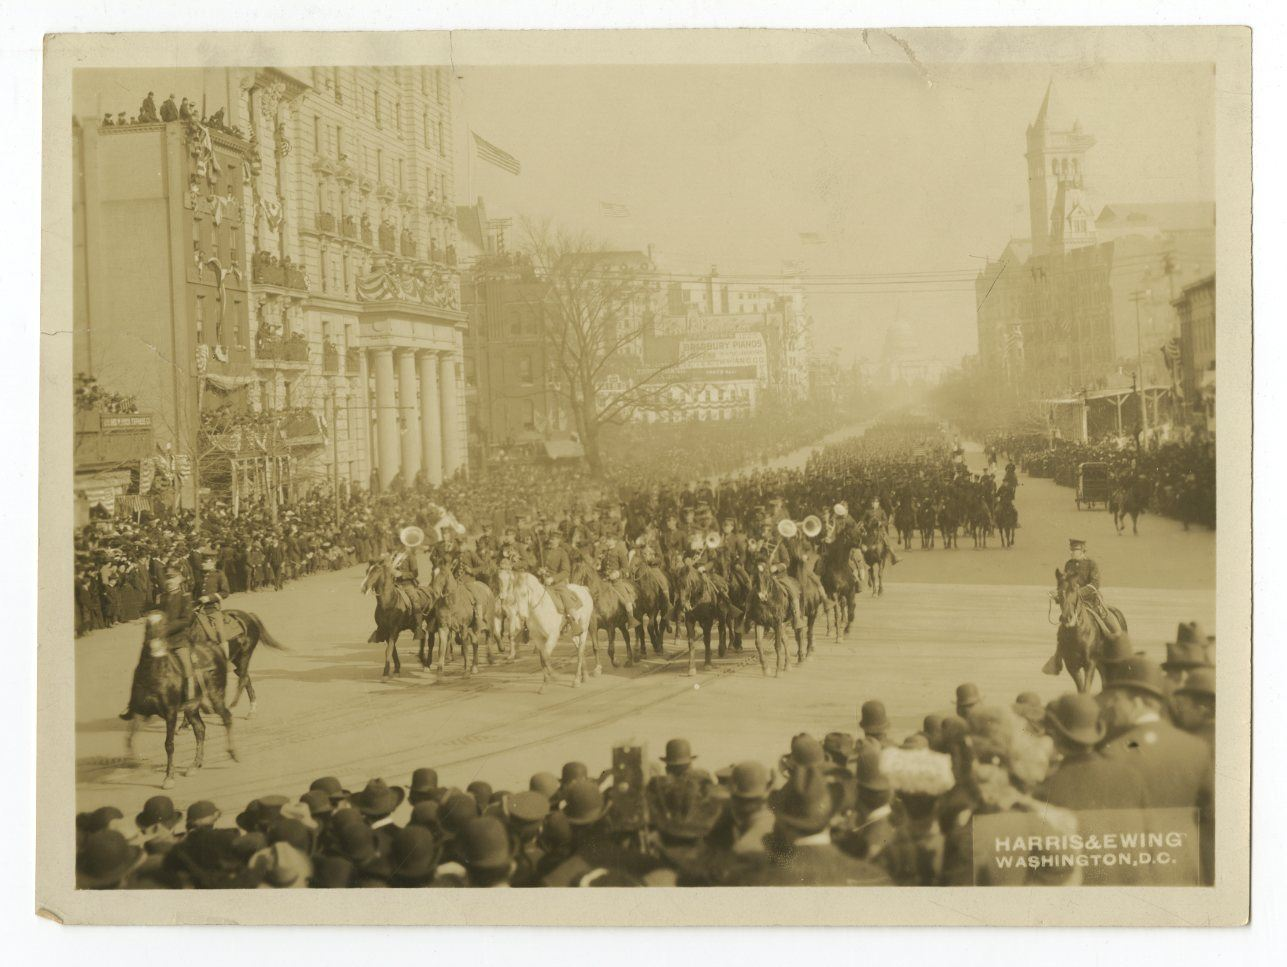 Theodore Roosevelt Inaugural Parade